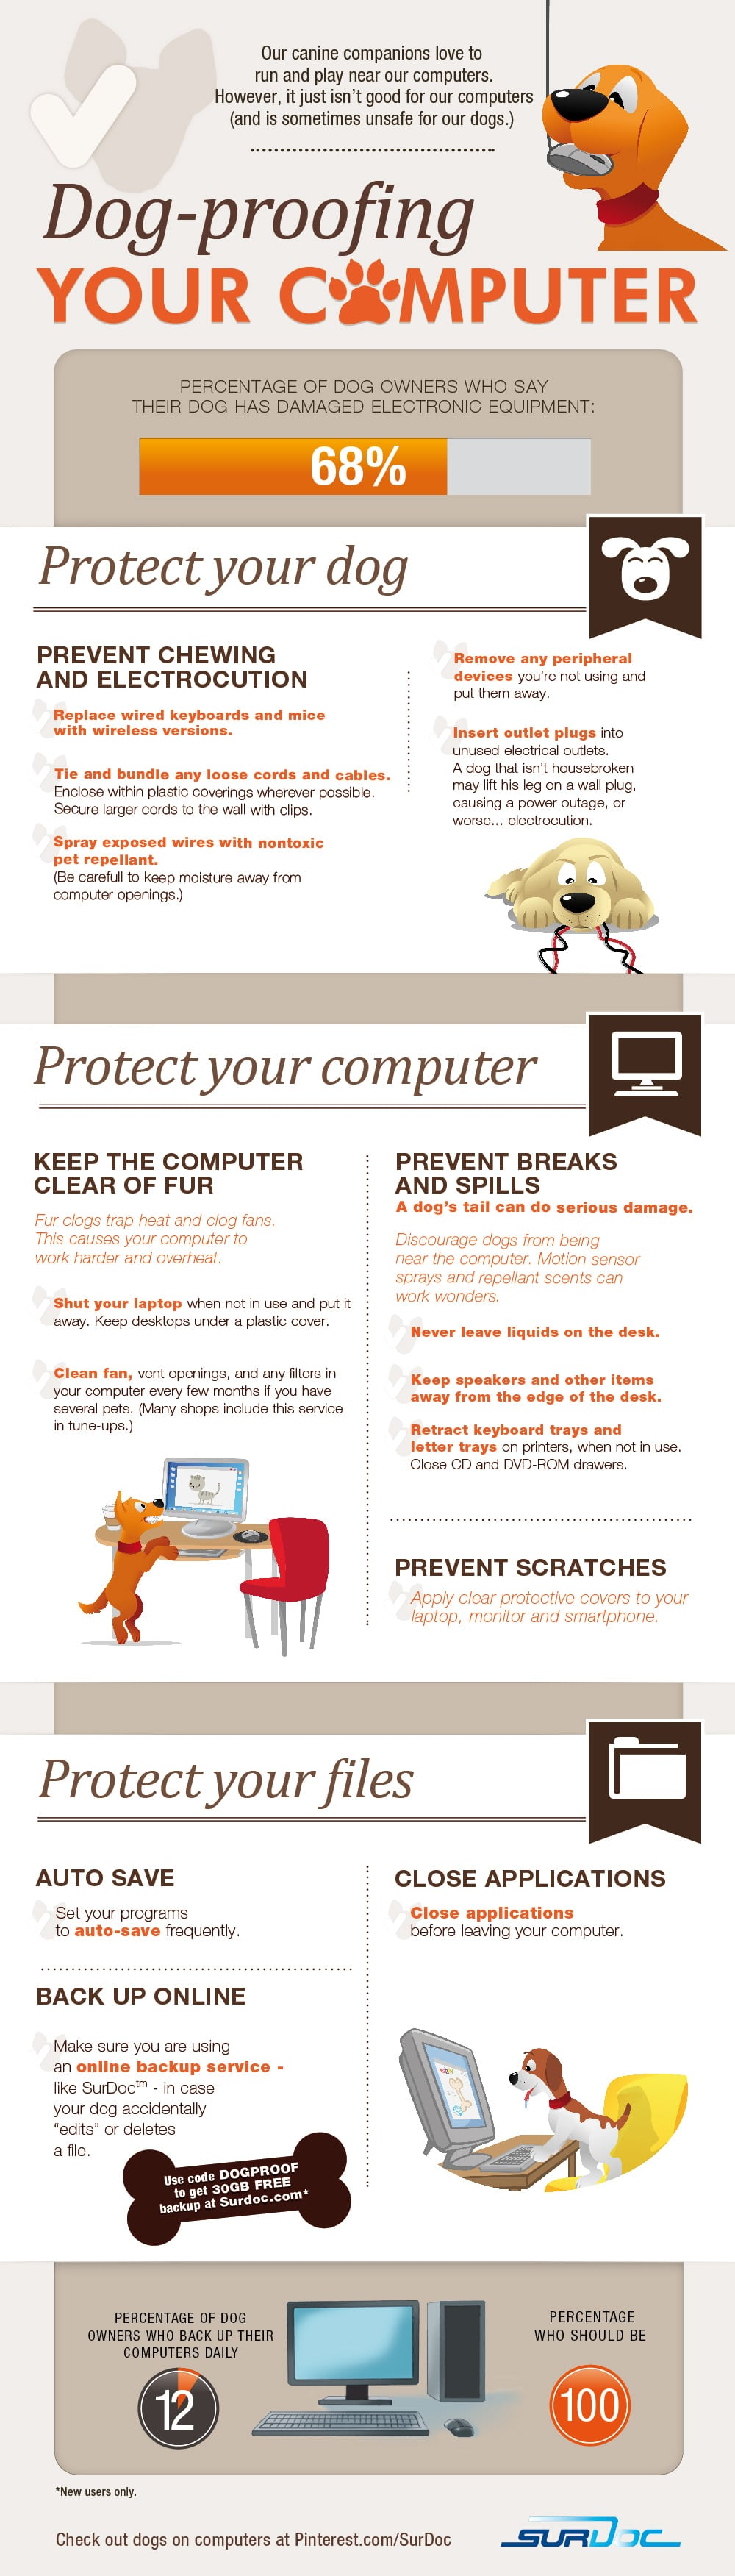 How To Dog-Proof Your Computer [Infographic]